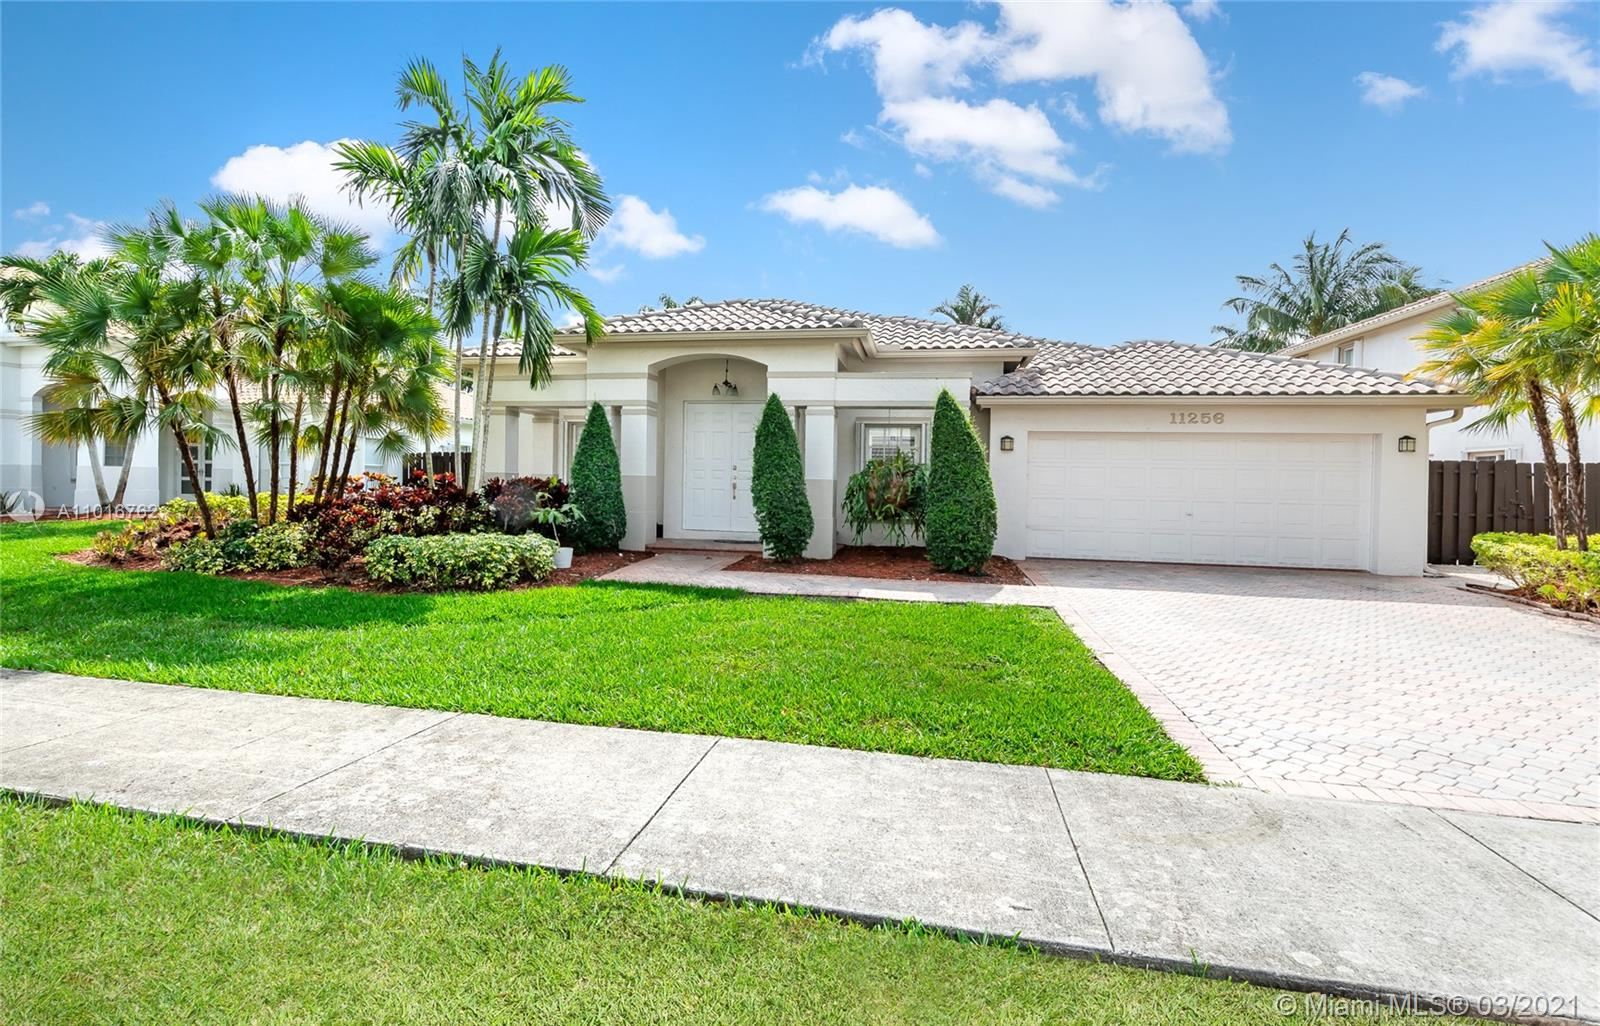 11256 NW 62nd Ter, Doral, FL 33178 - #: A11016762